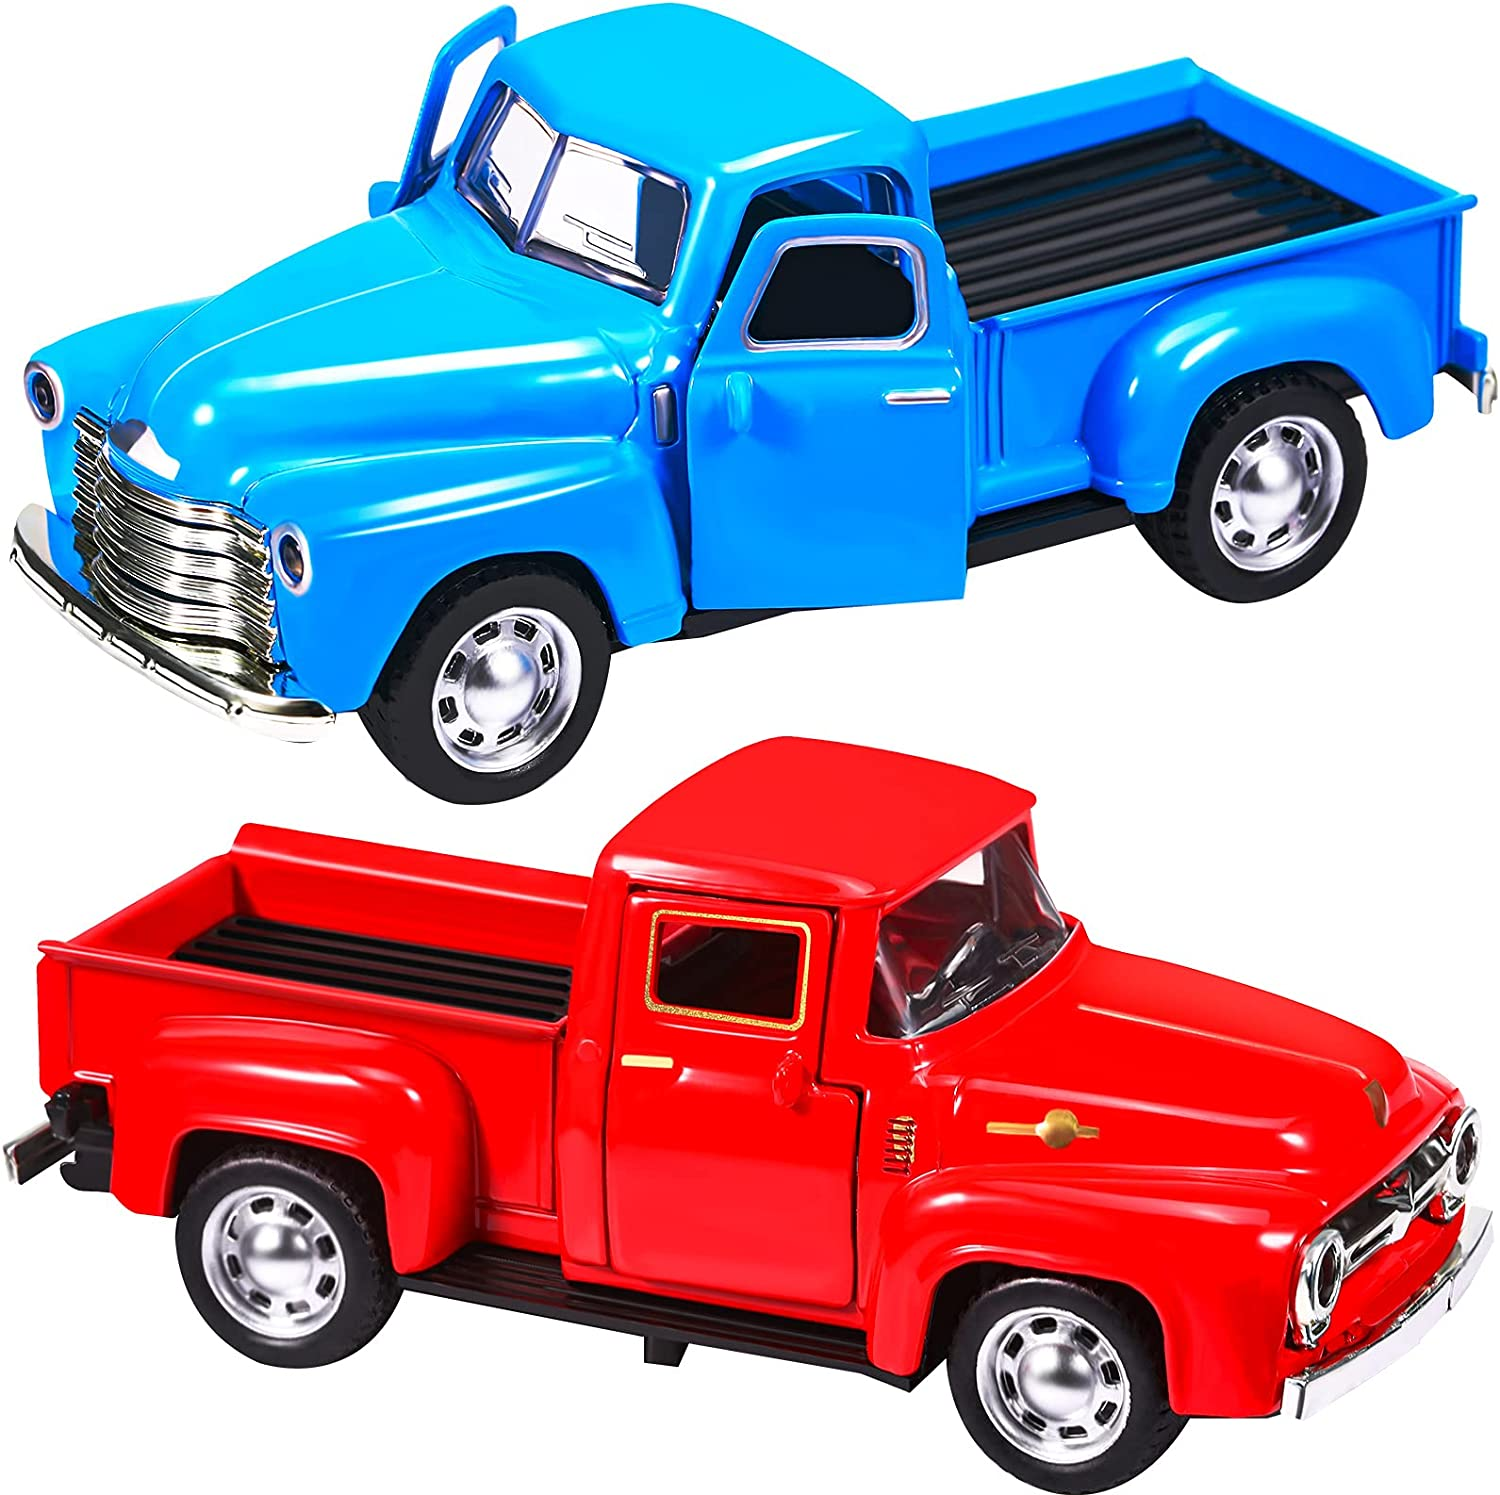 2 Pieces Vintage Red Truck Christmas Decorations, Decorative Red Metal Truck Car Model Pick-Up Metal Truck Planter Farmhouse Centerpiece Table Decorations for Christmas Decoration Table Decoration